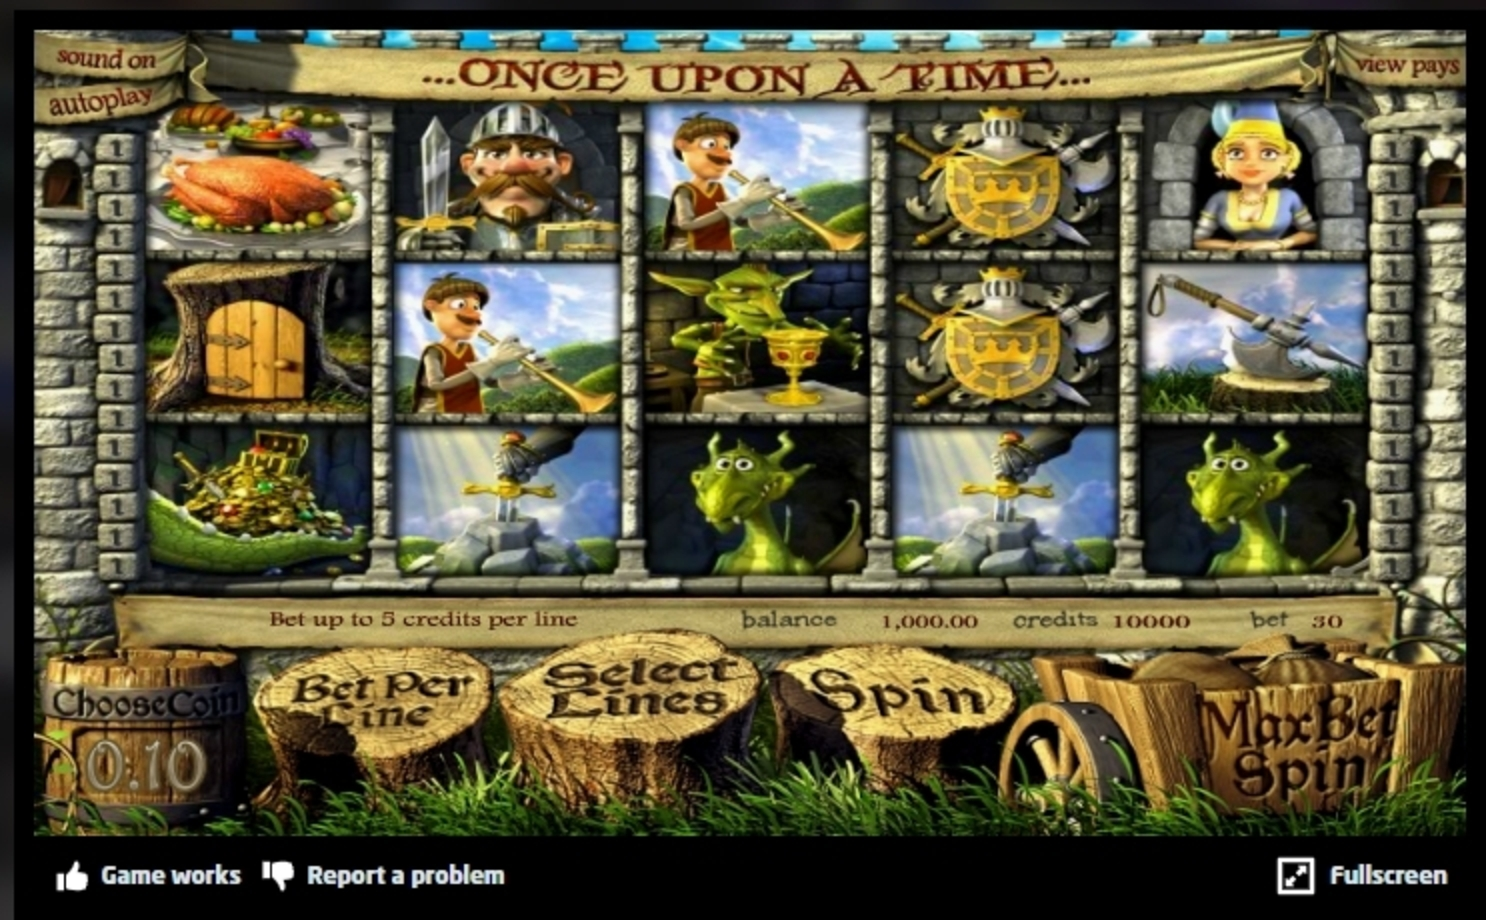 Reels in Once Upon a Time (Betsoft) Slot Game by Betsoft